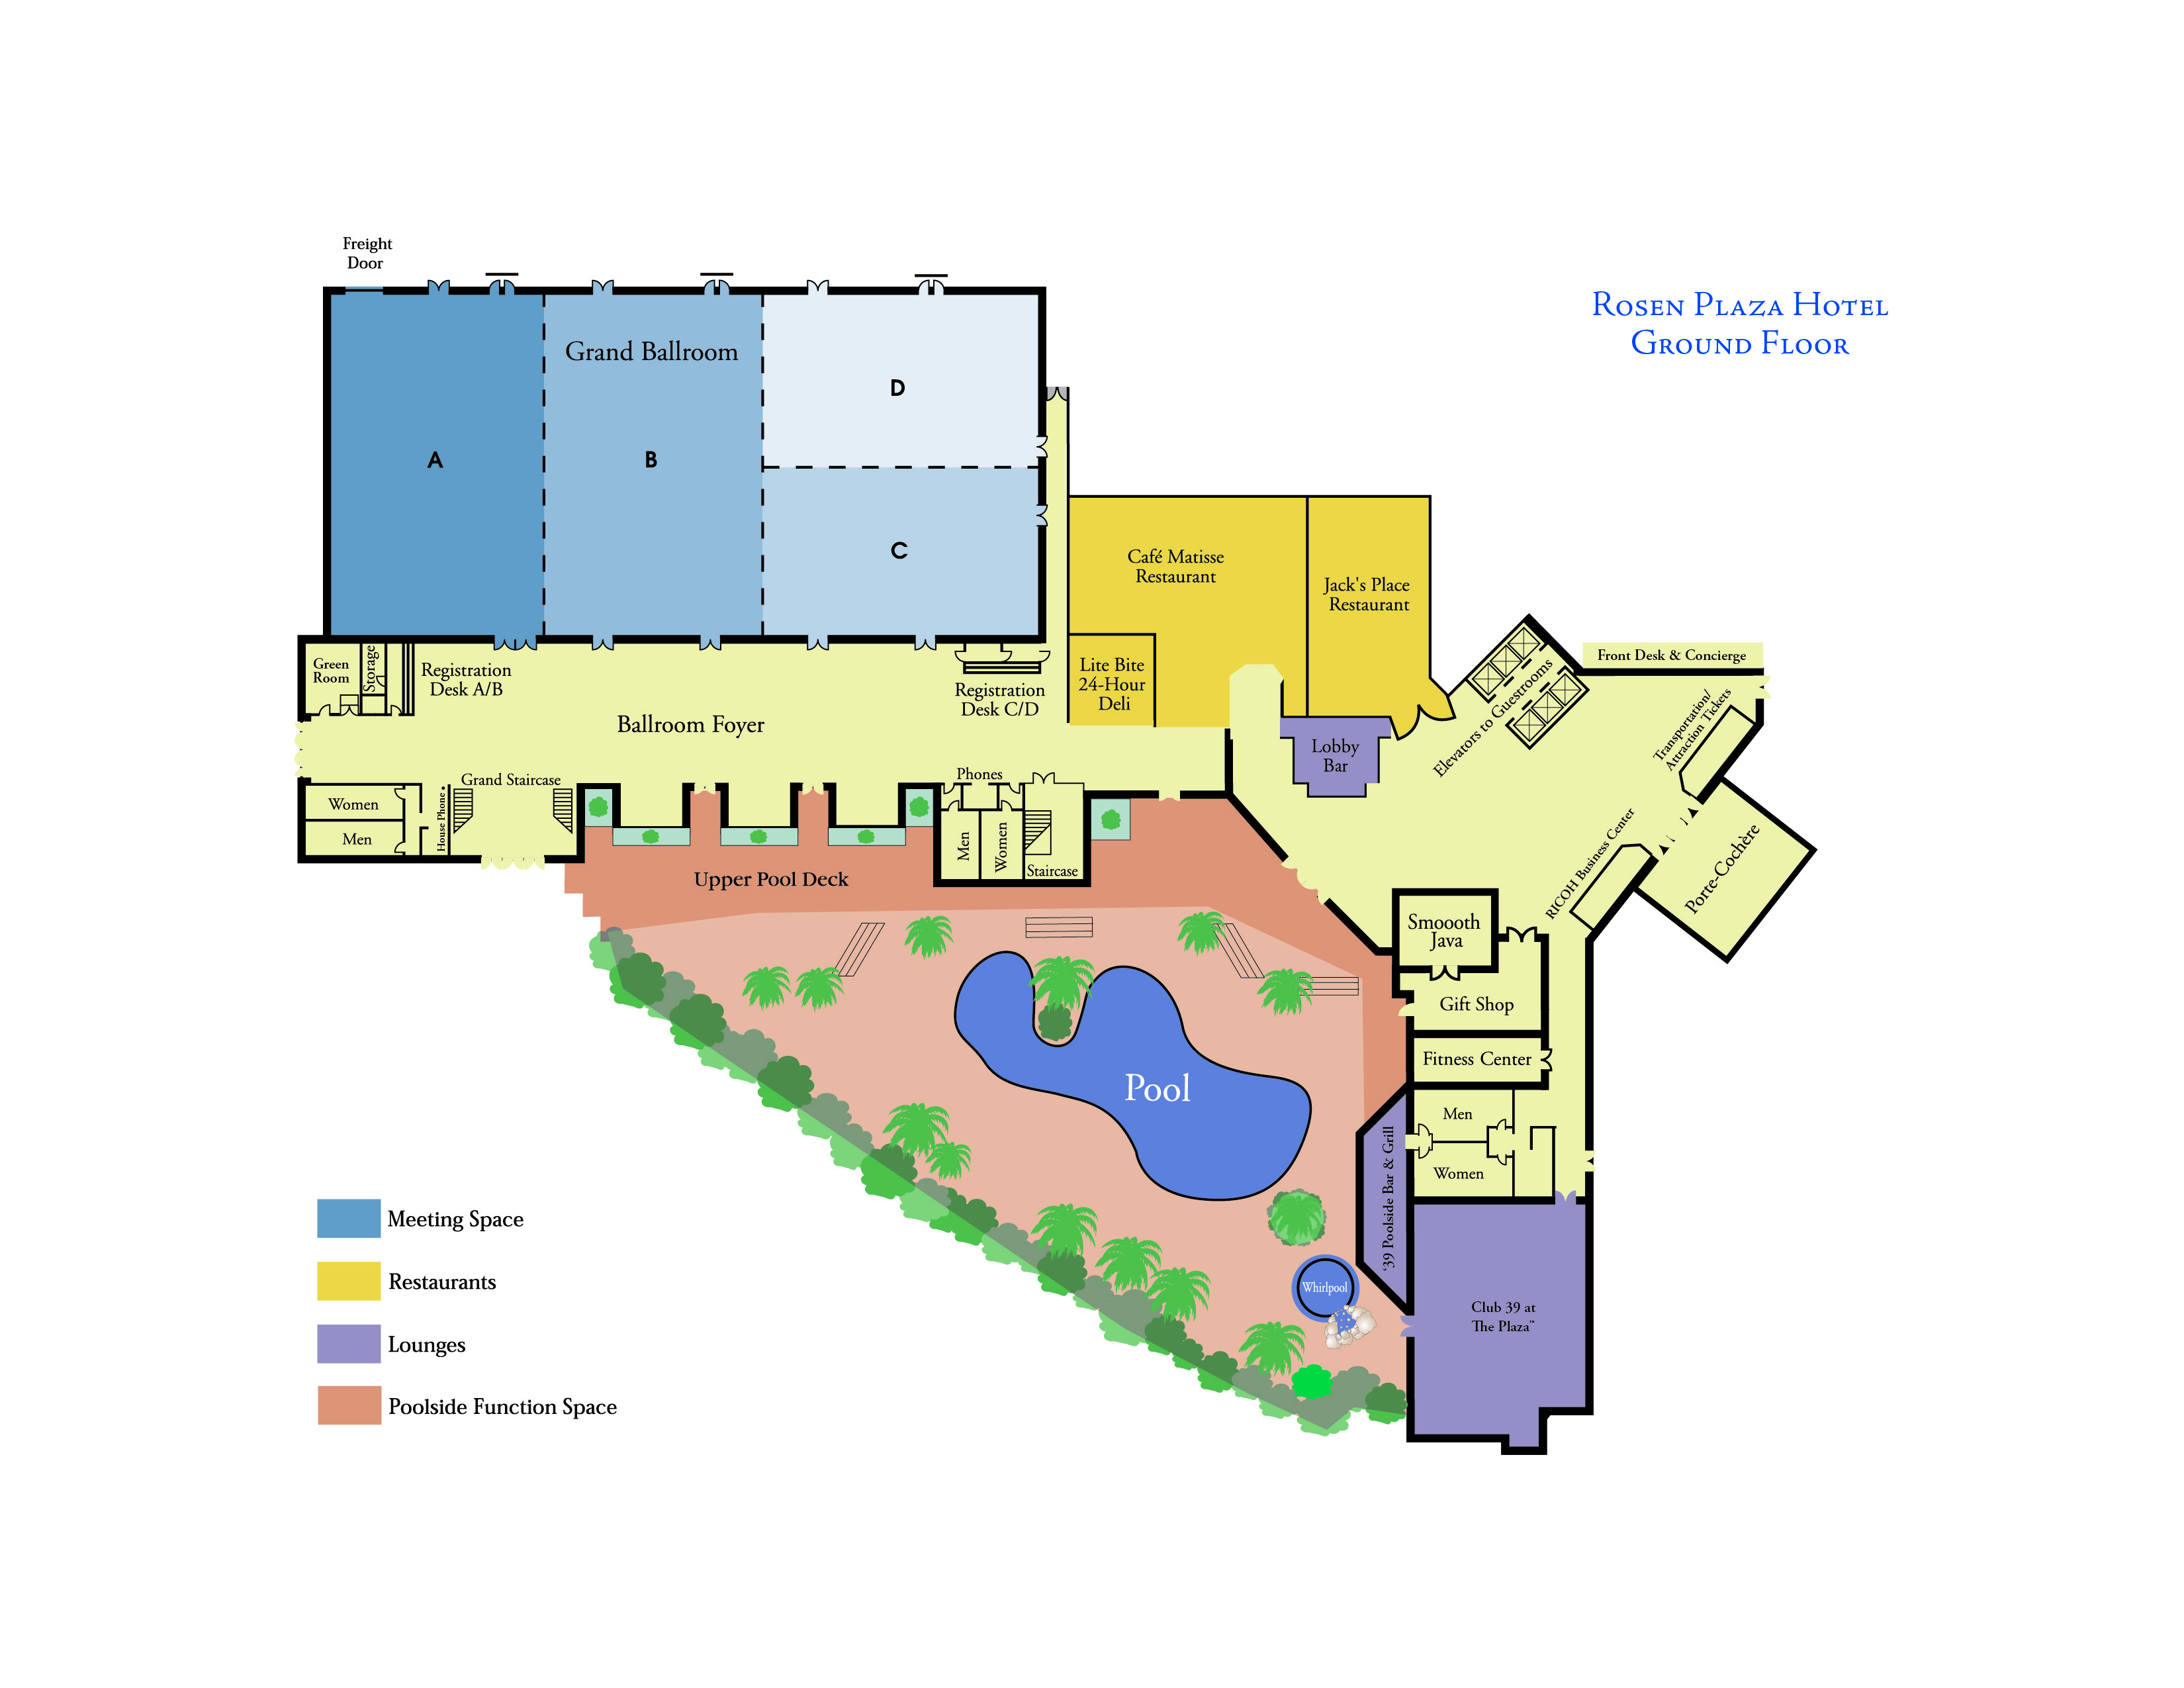 Orlando Meeting and Convention Hotel | Capacities and Floorplans ...